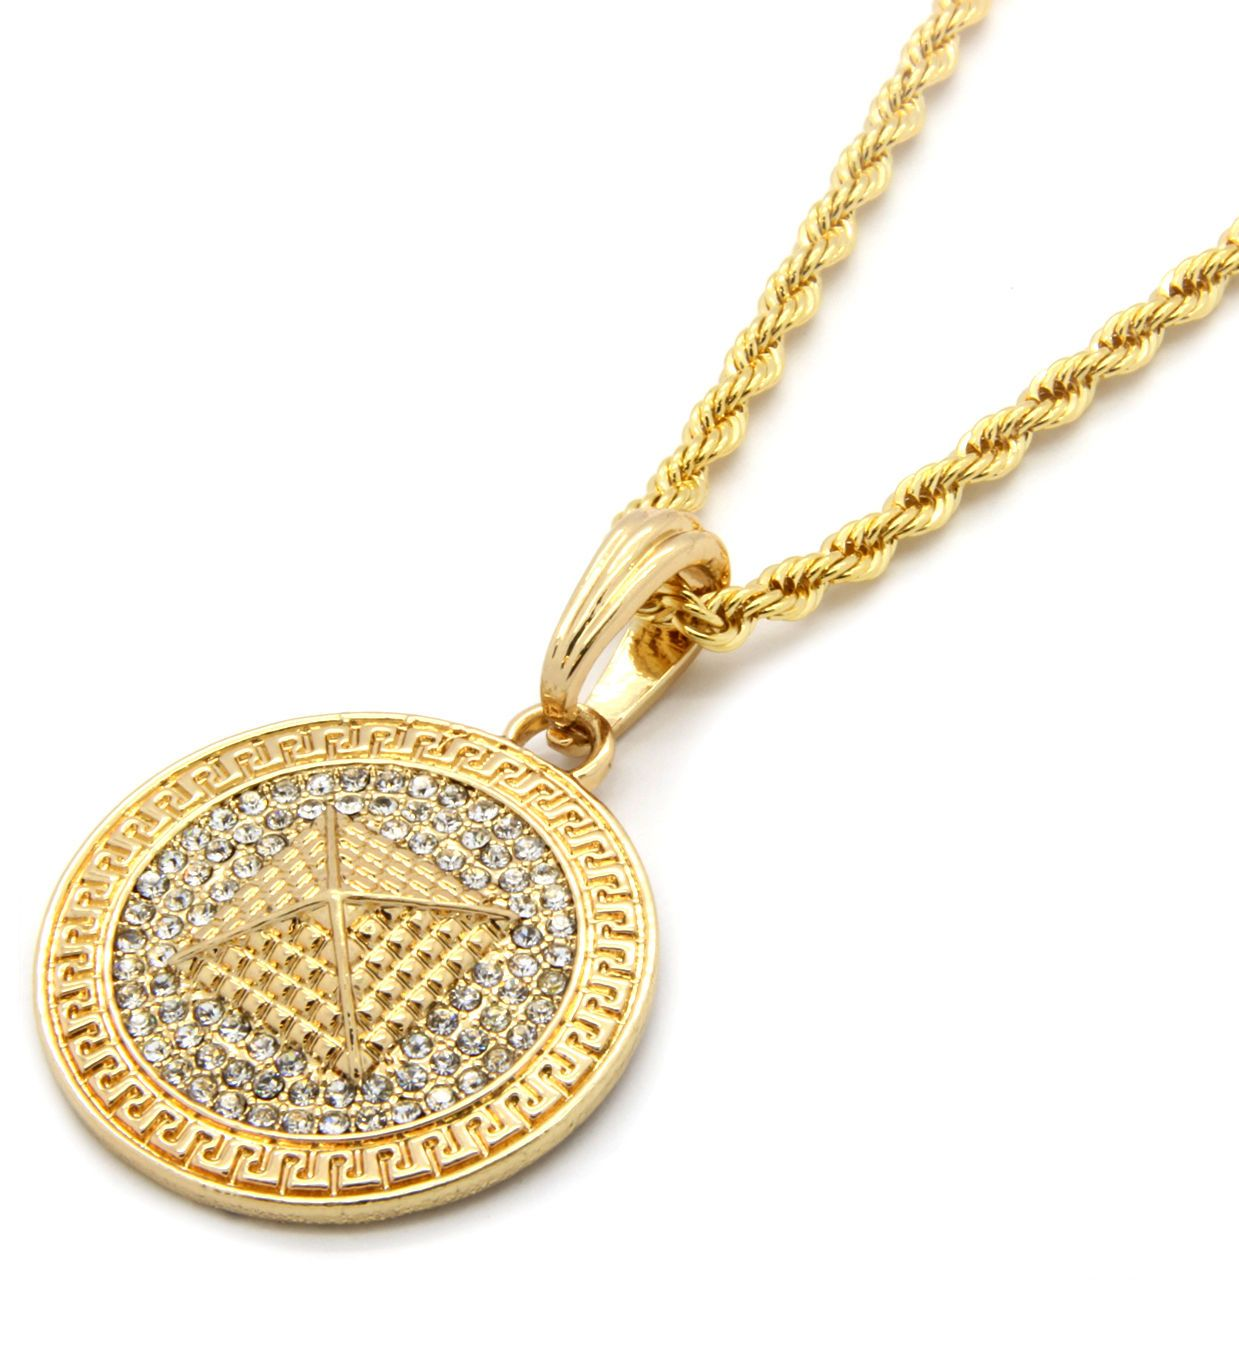 inches in medallion mens from on rope chain necklaces necklace gold accessories pattern pendant com for aliexpress jewelry item men tone real pyramid